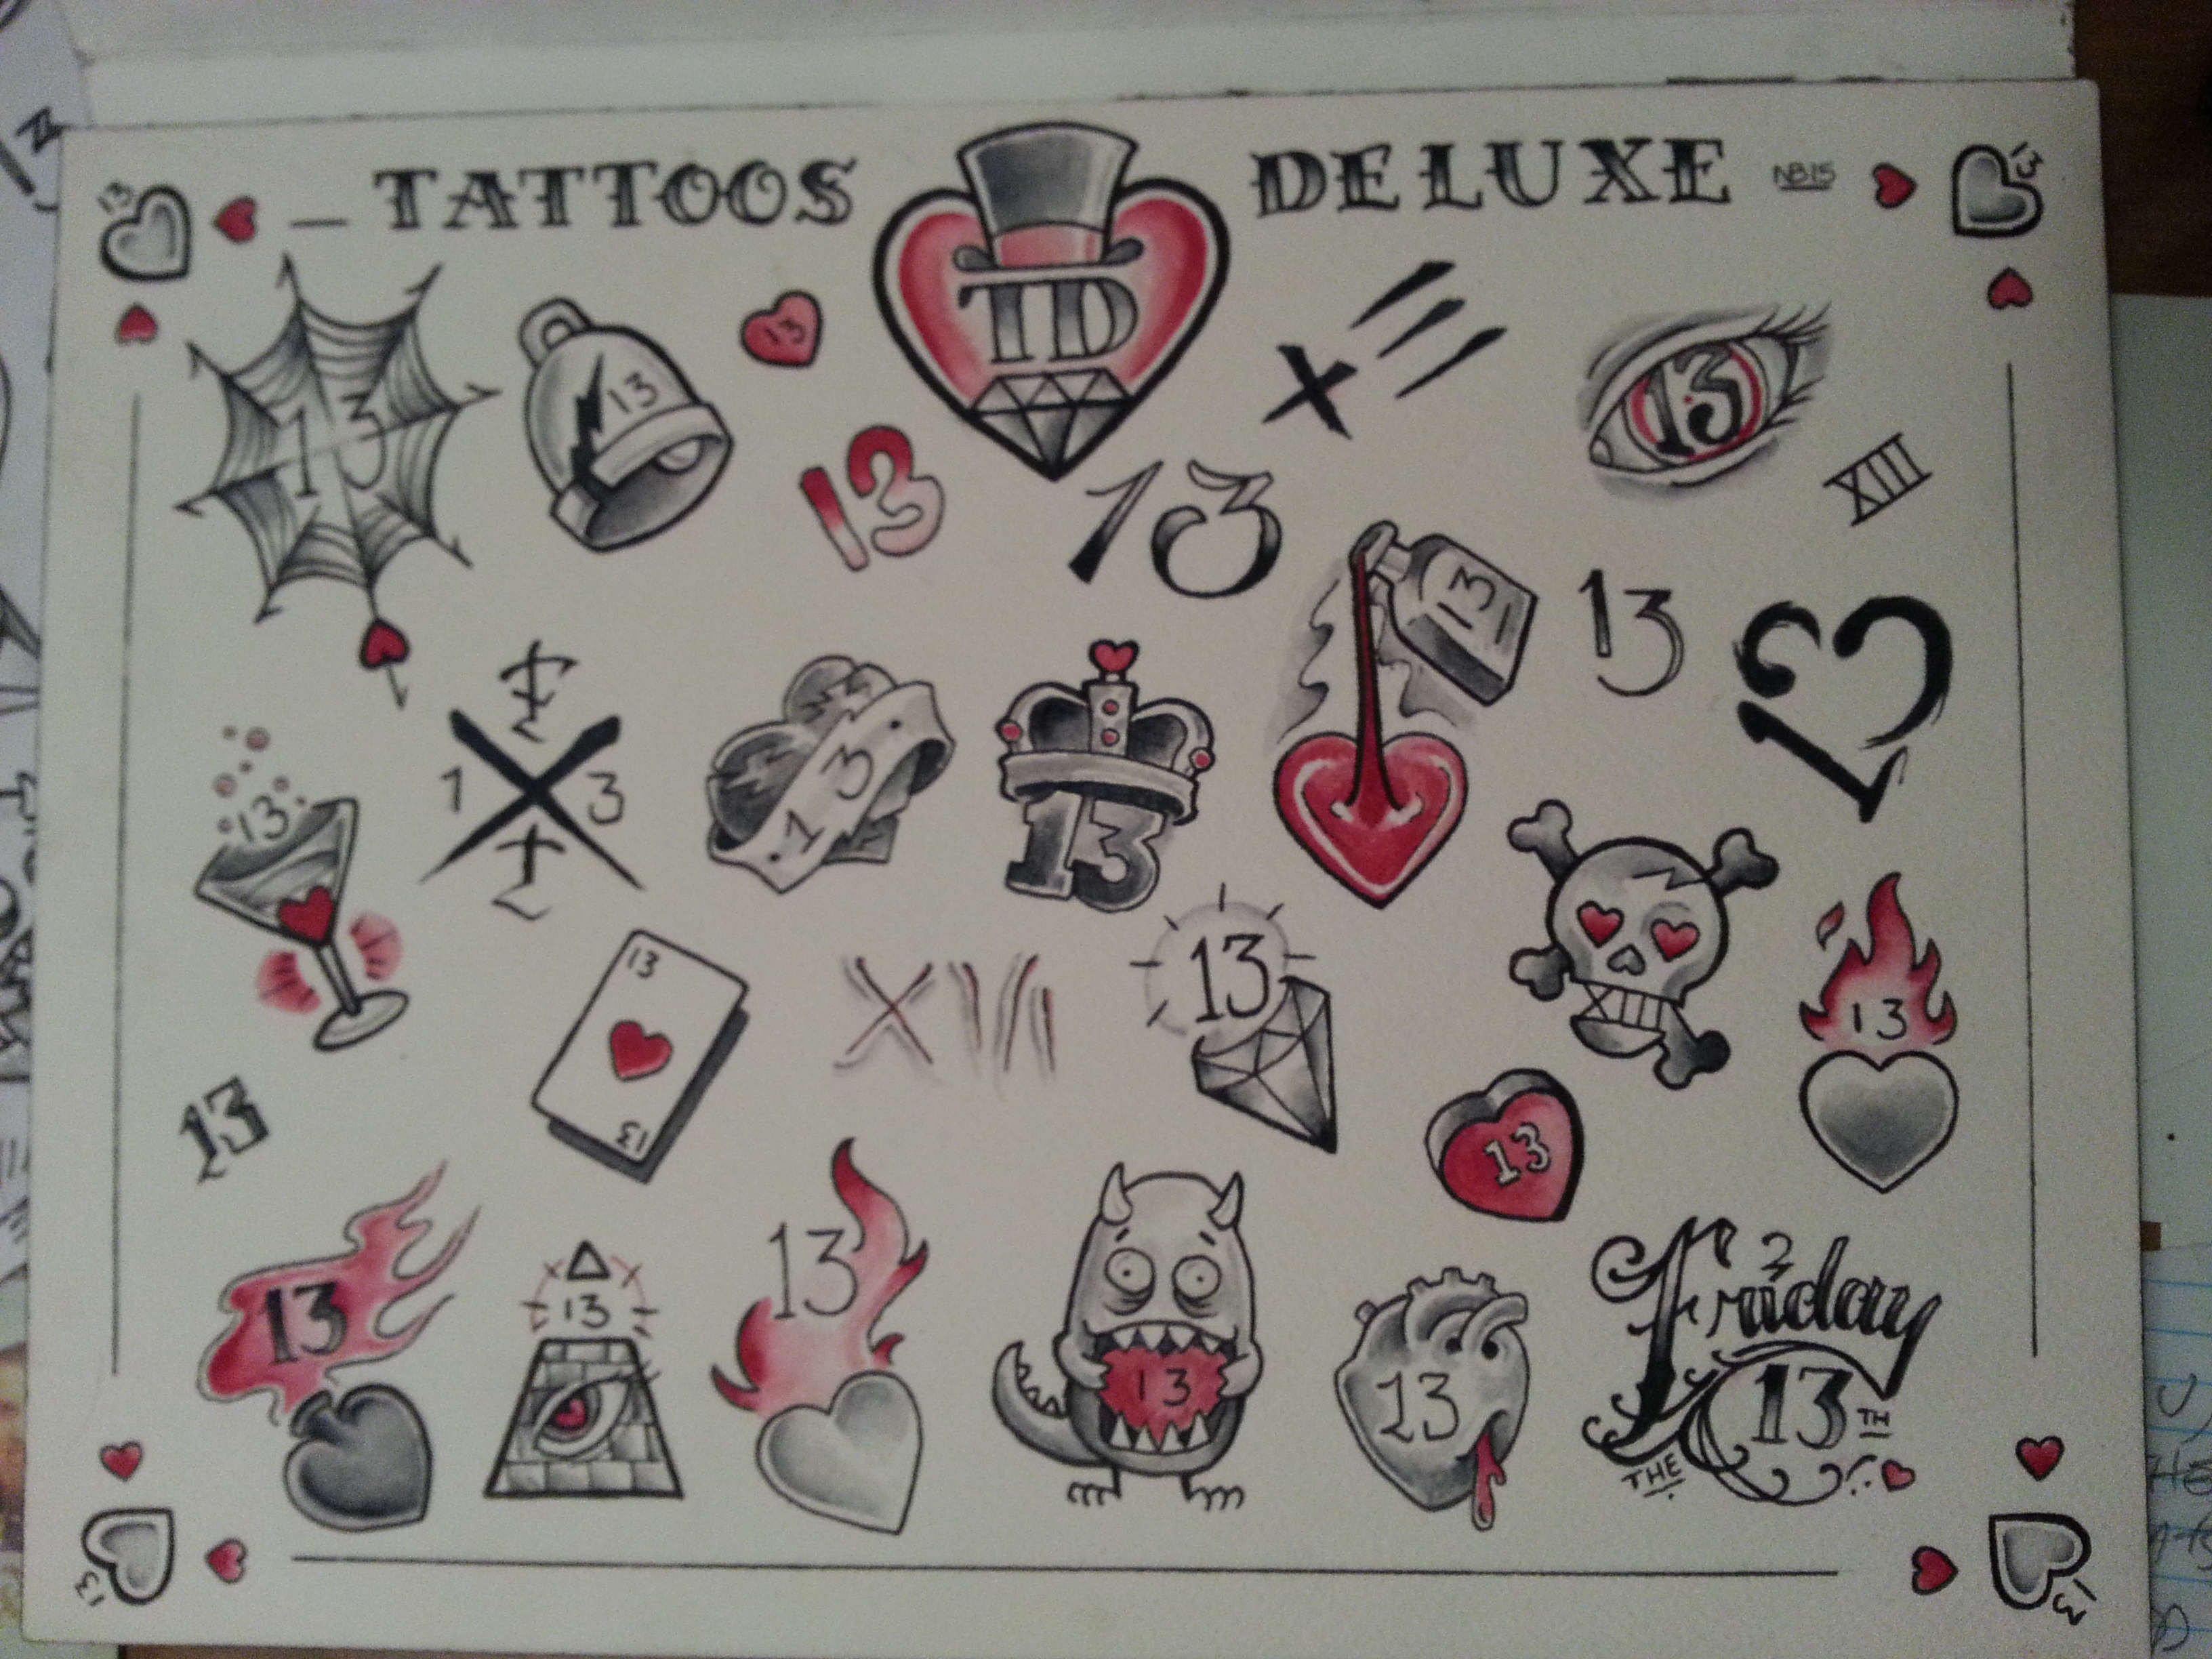 February 2015 Greg James Tattoos Deluxe